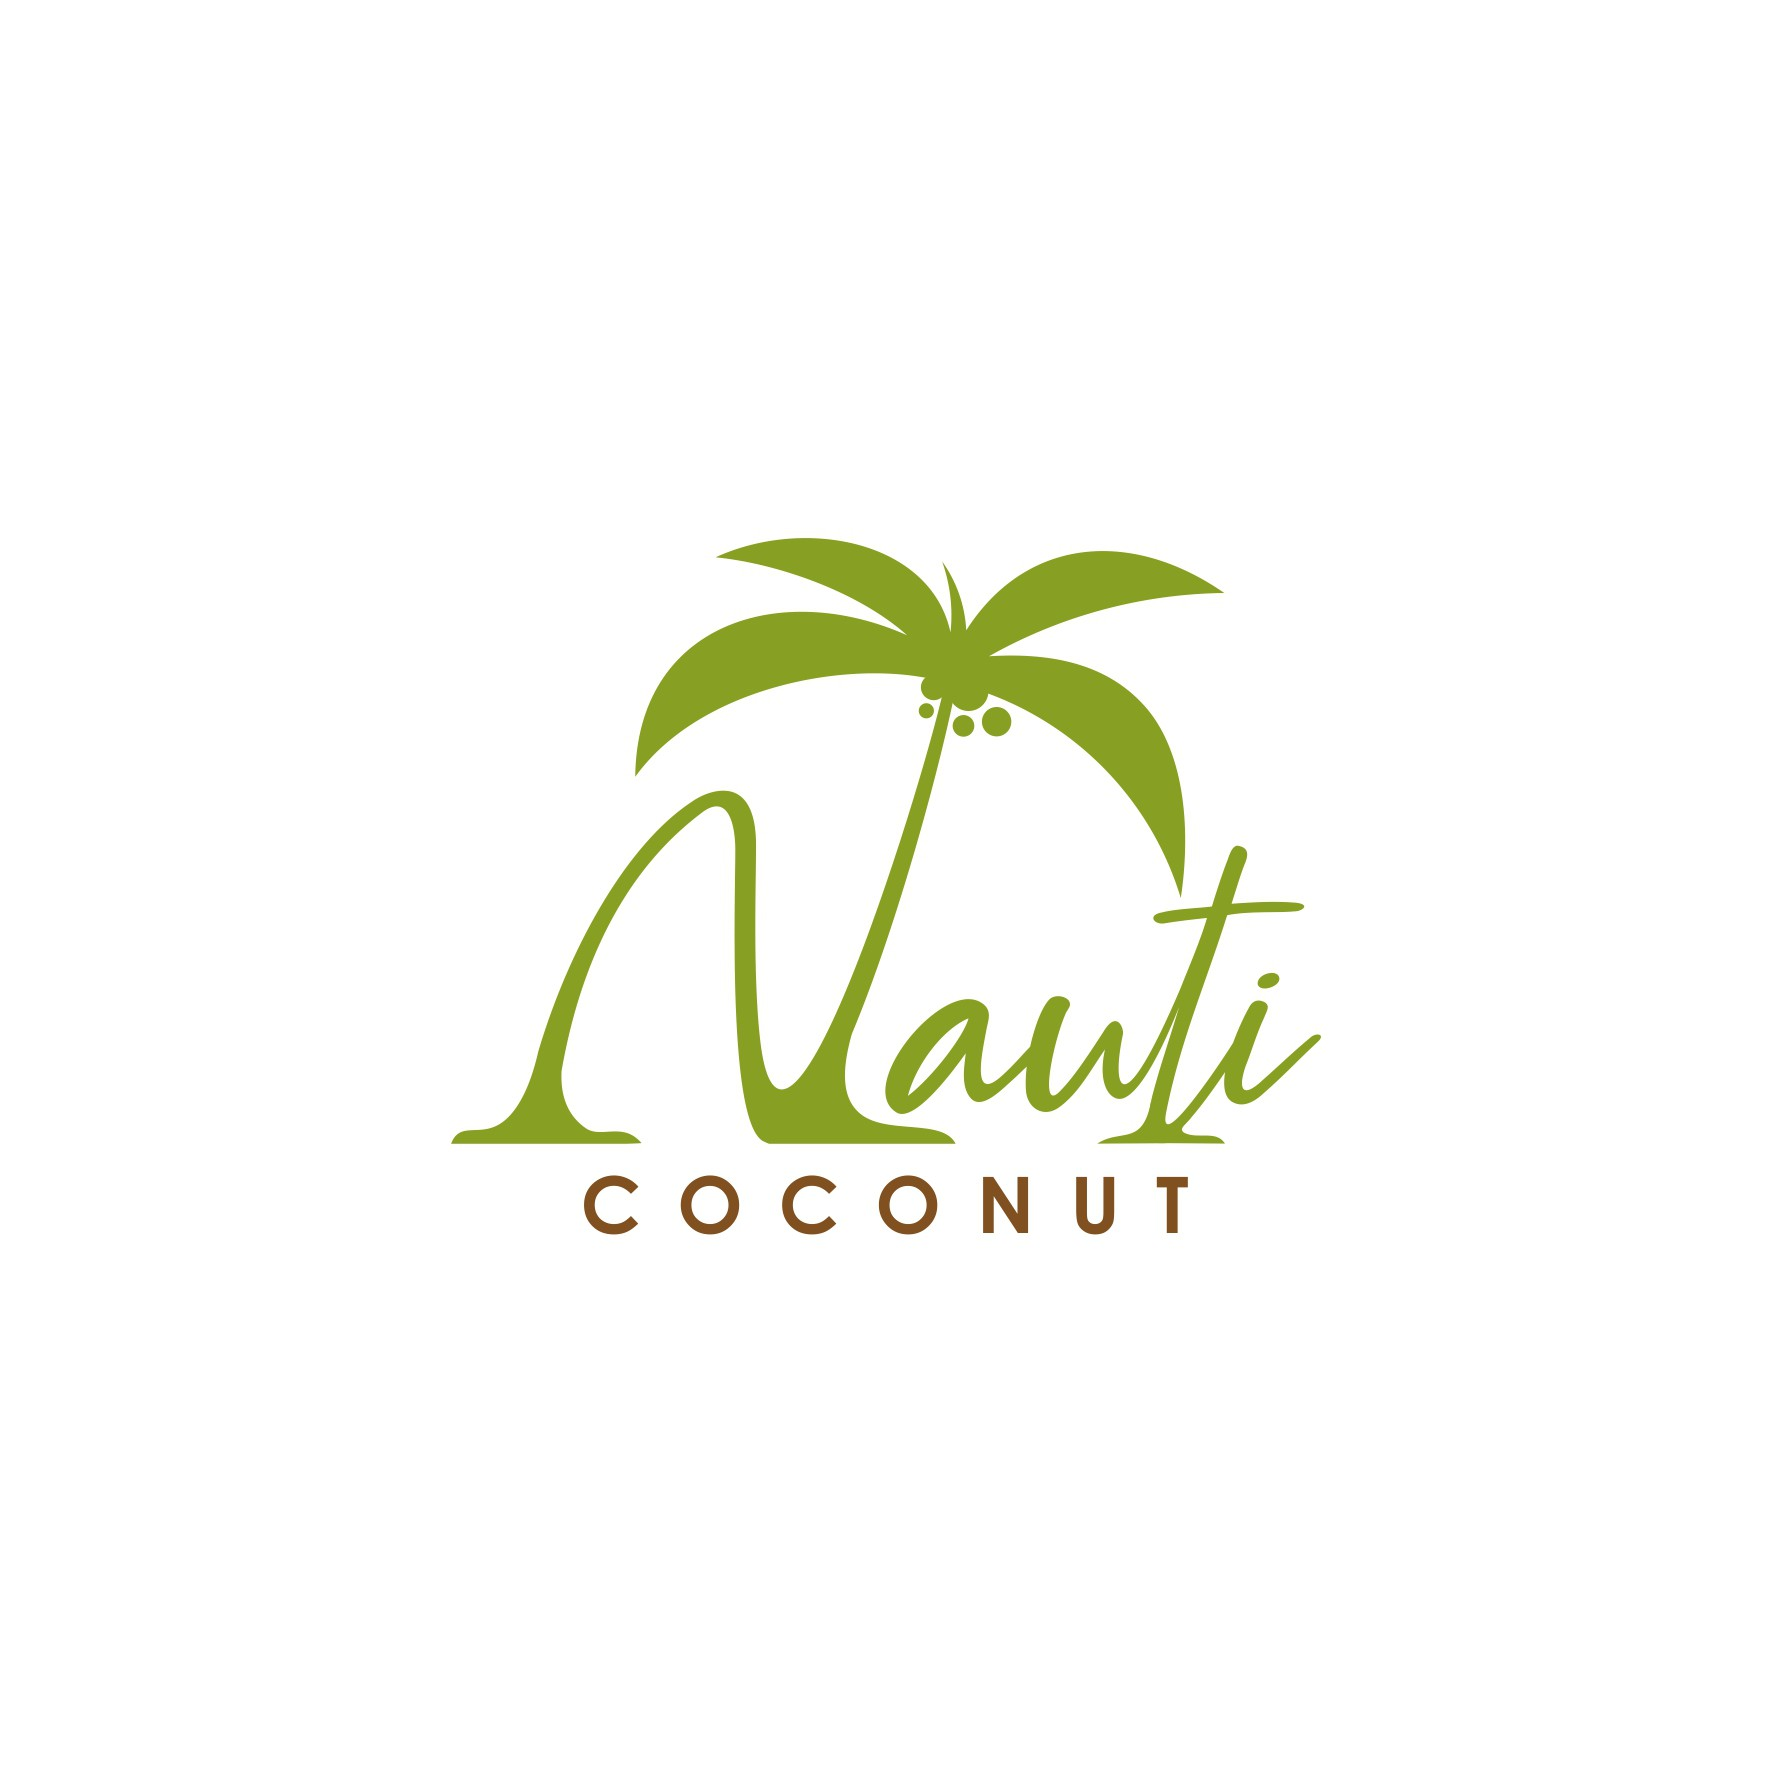 """Design the perfect logo for """"The Nauti Coconut"""" business located in a tropical setting"""